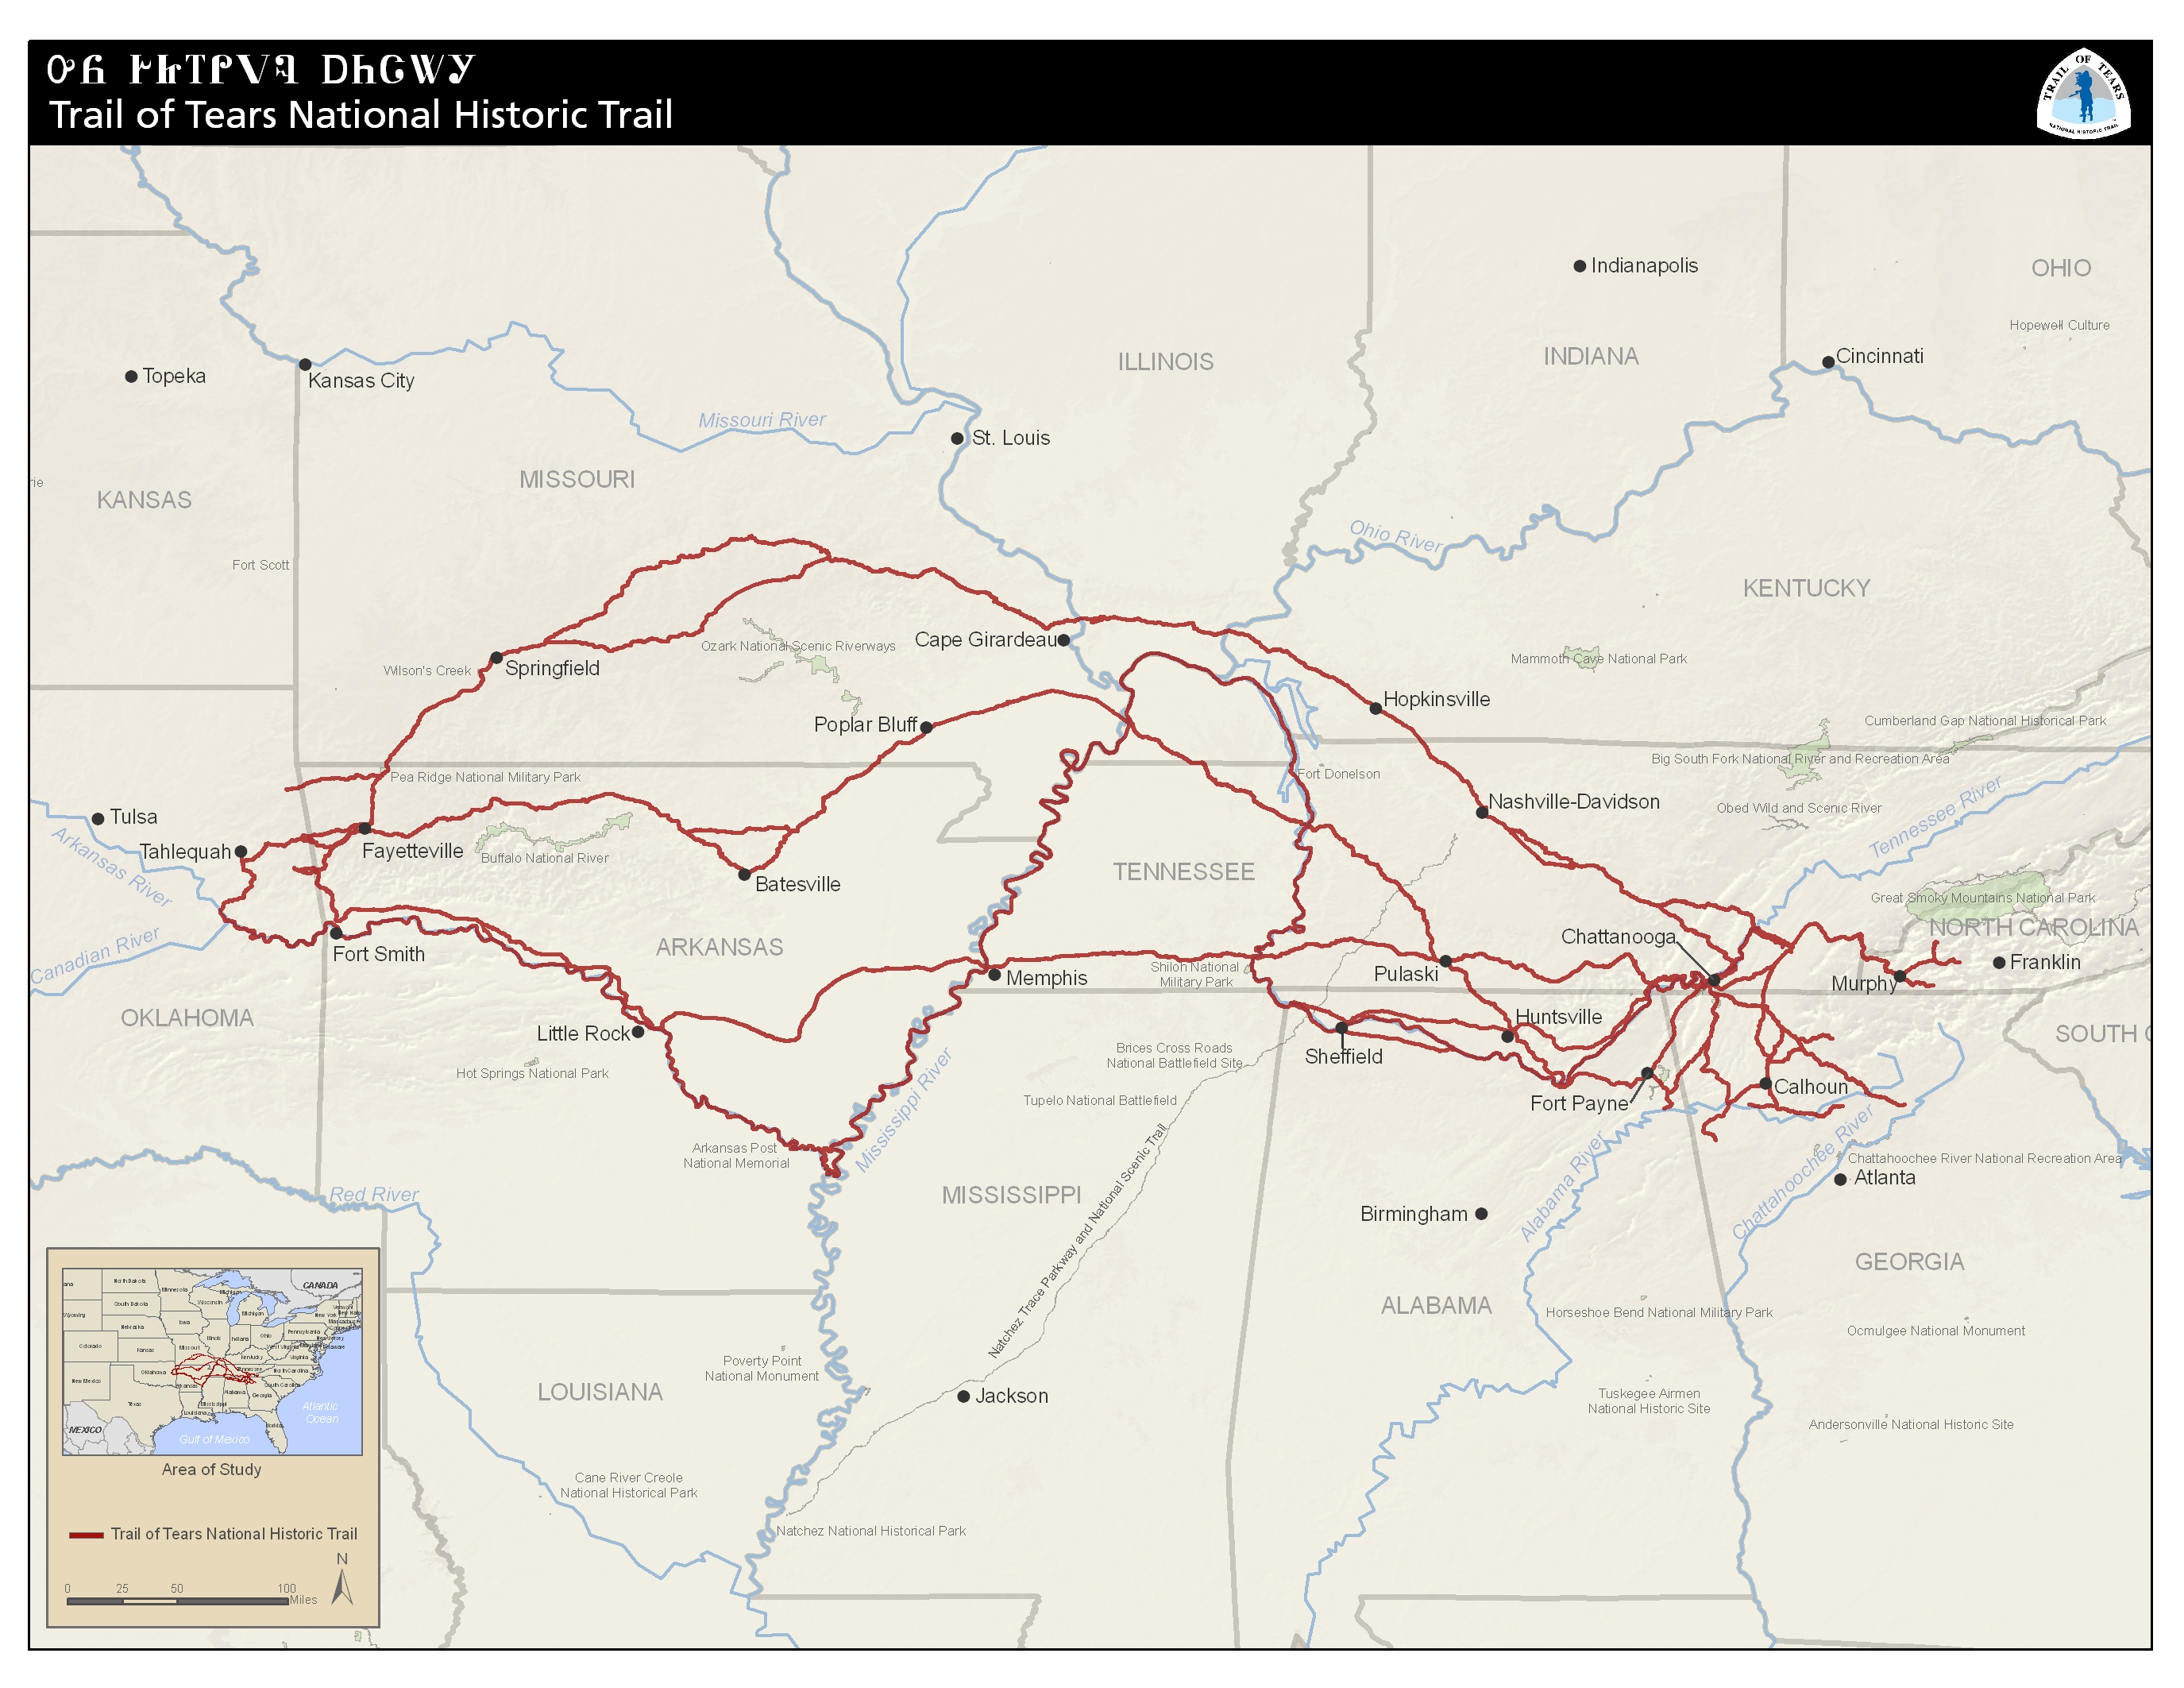 Map of the Trail of Tears - Map courtesy National Park Service